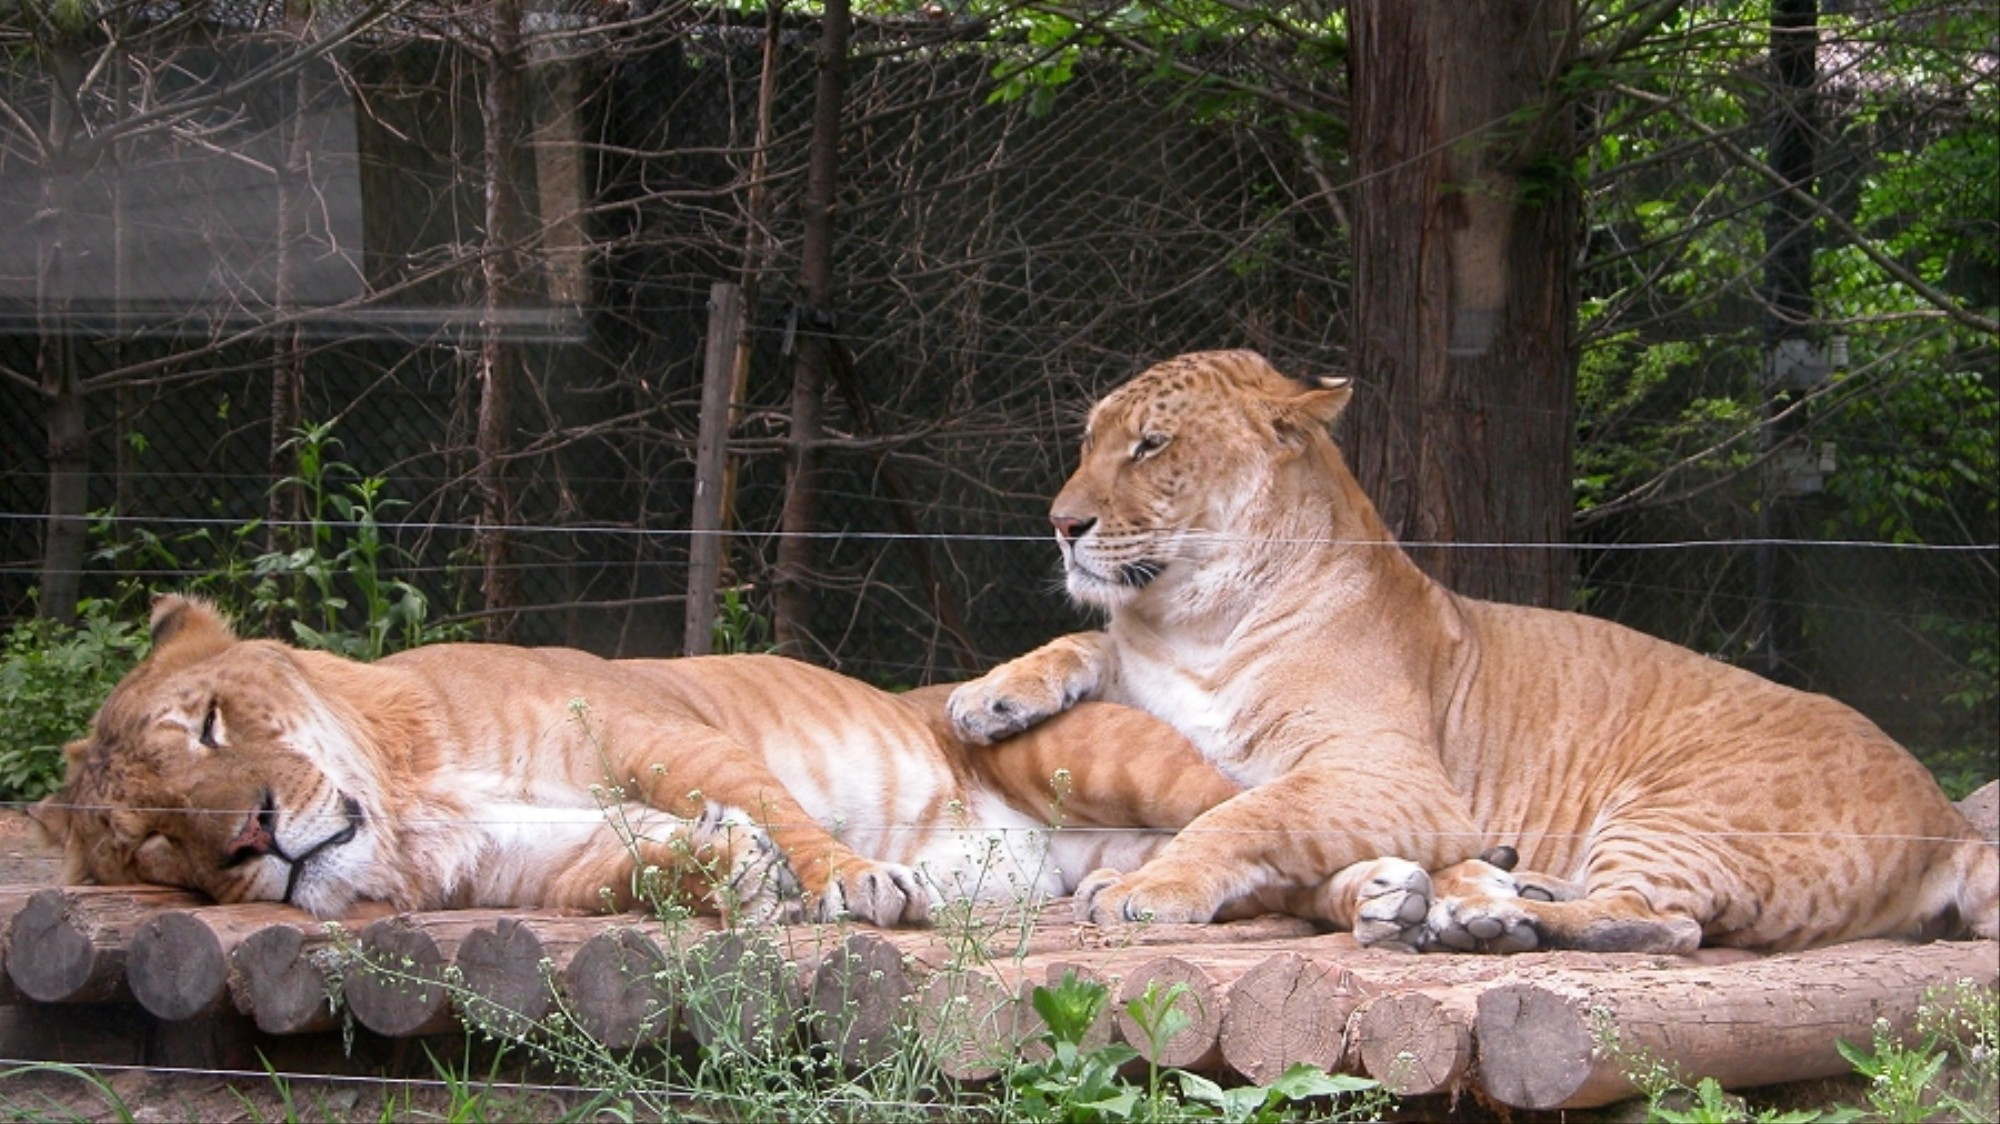 This Is Why Ligers, Mules and Other Hybrid Animals Can't Reproduce